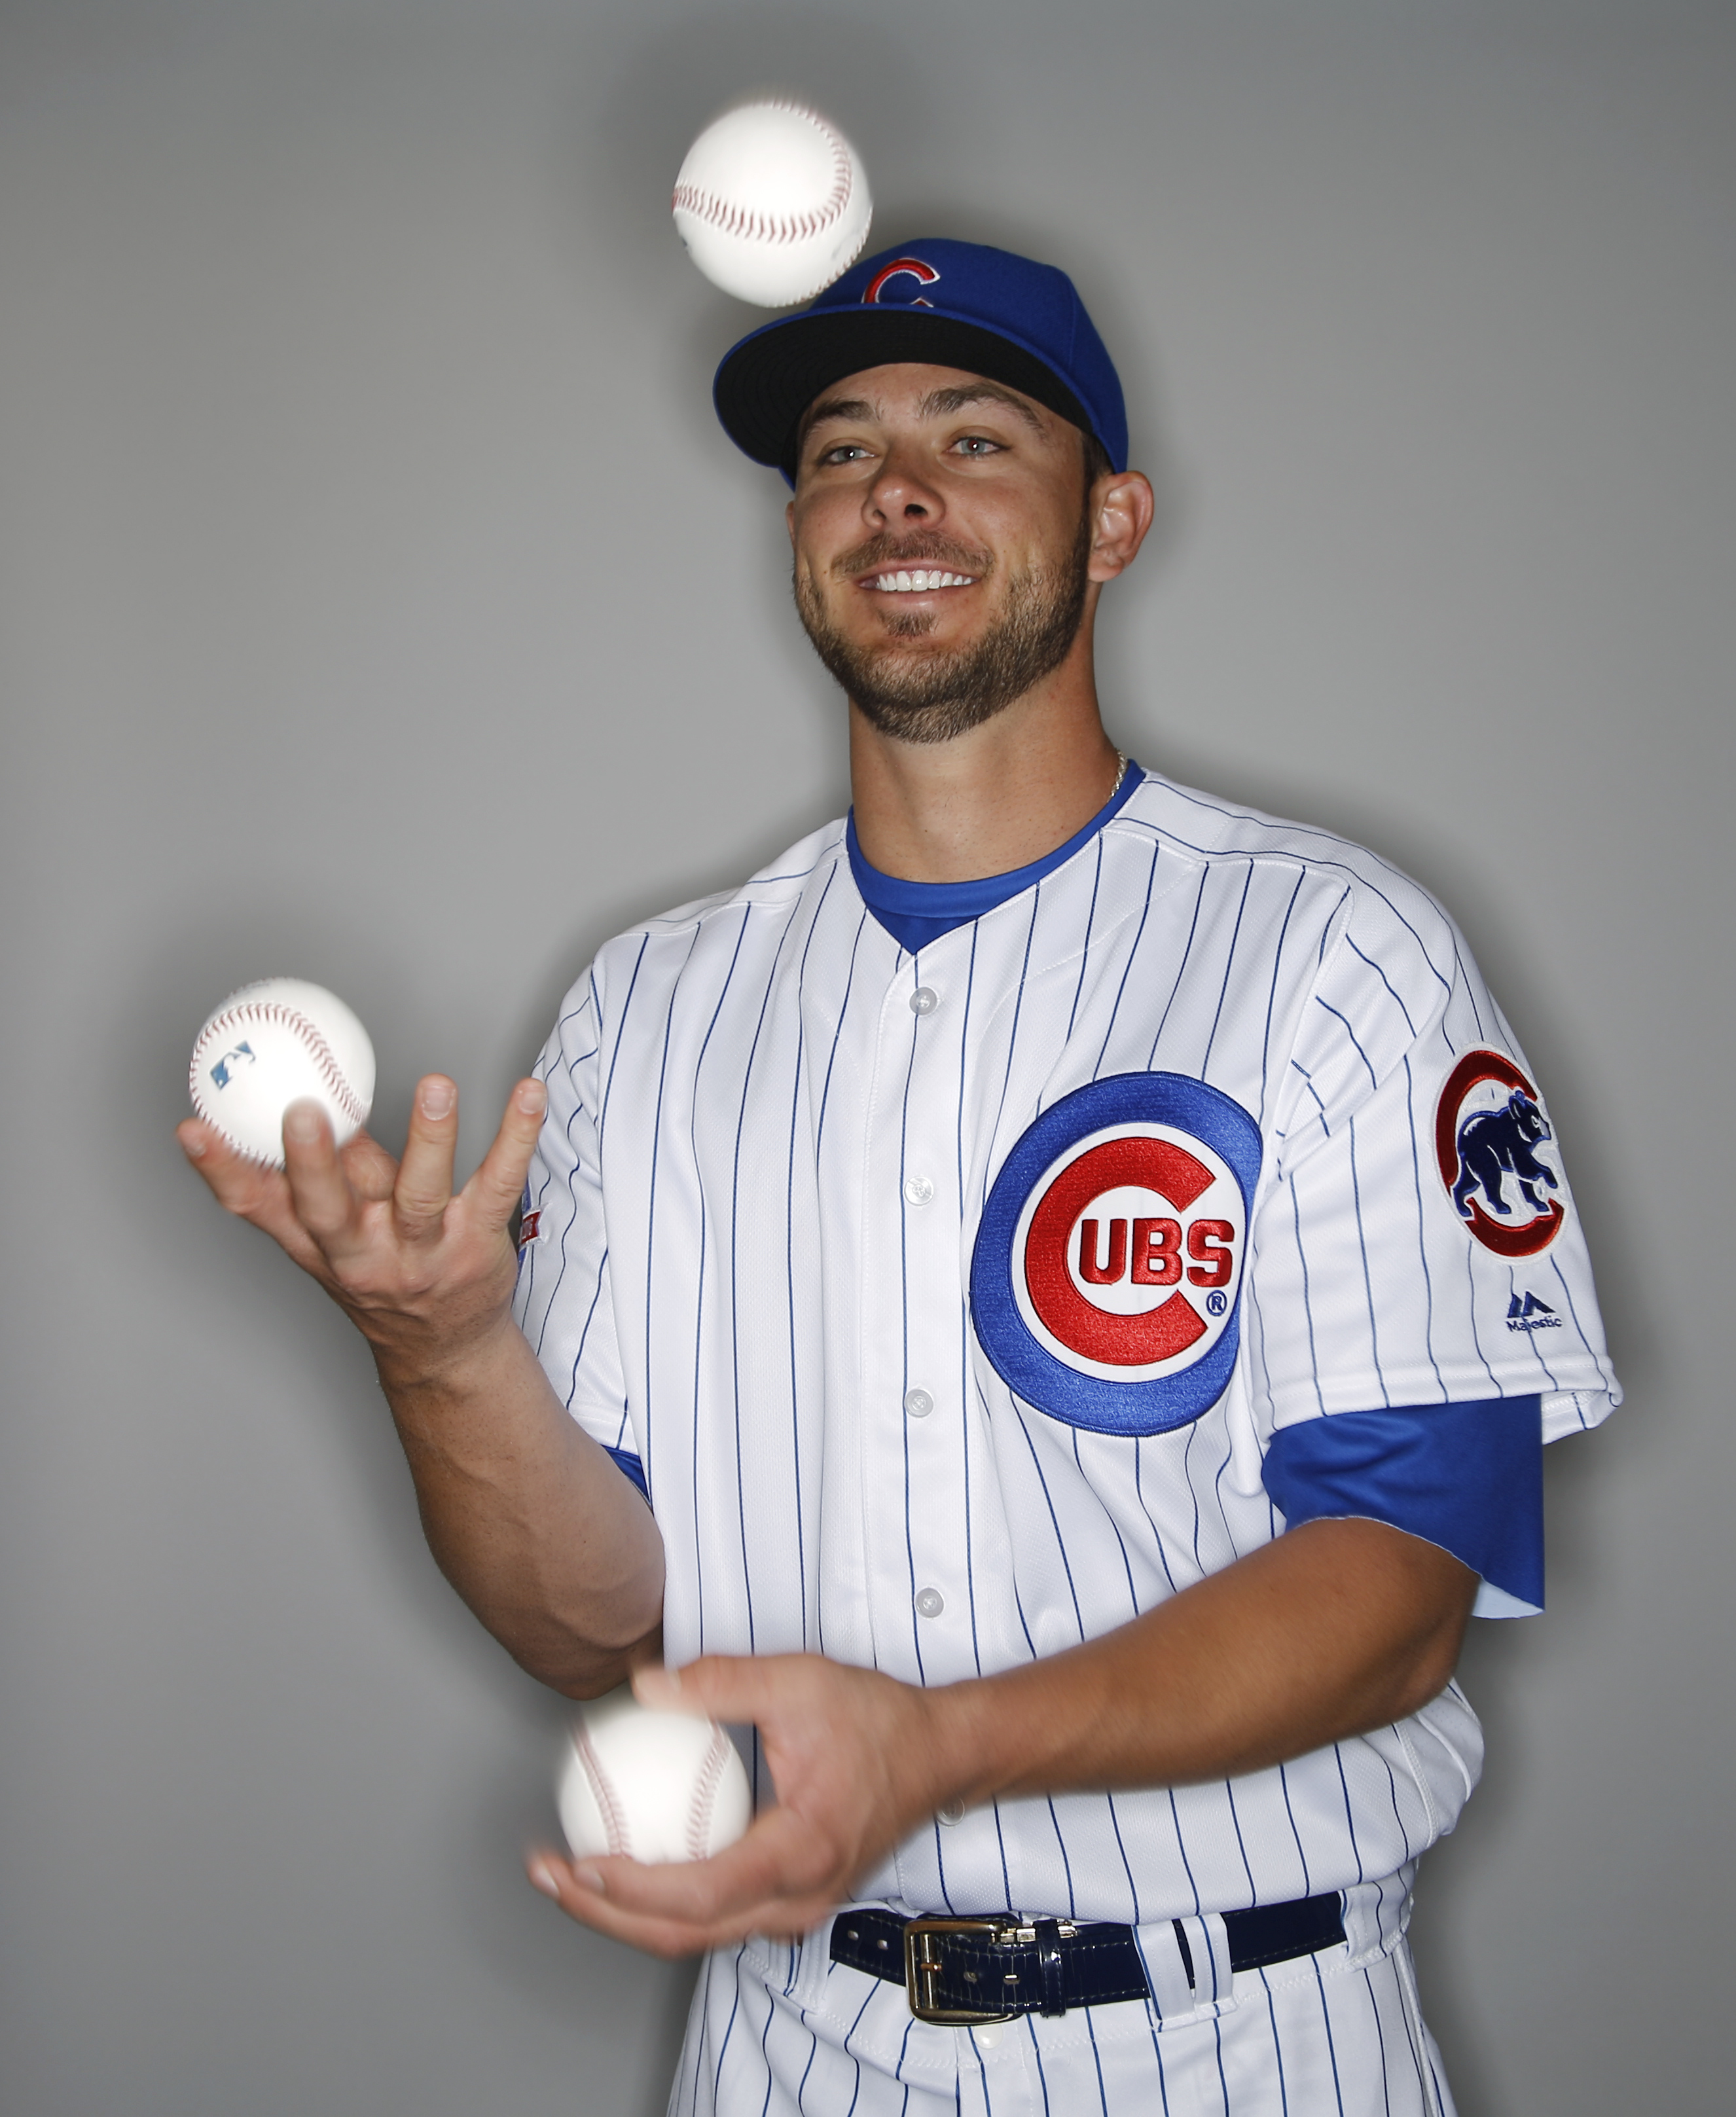 Chicago Cubs' Kris Bryant juggles some baseballs during the teams photo day Monday, Feb. 29, 2016, in Mesa, Ariz. (AP Photo/Morry Gash)